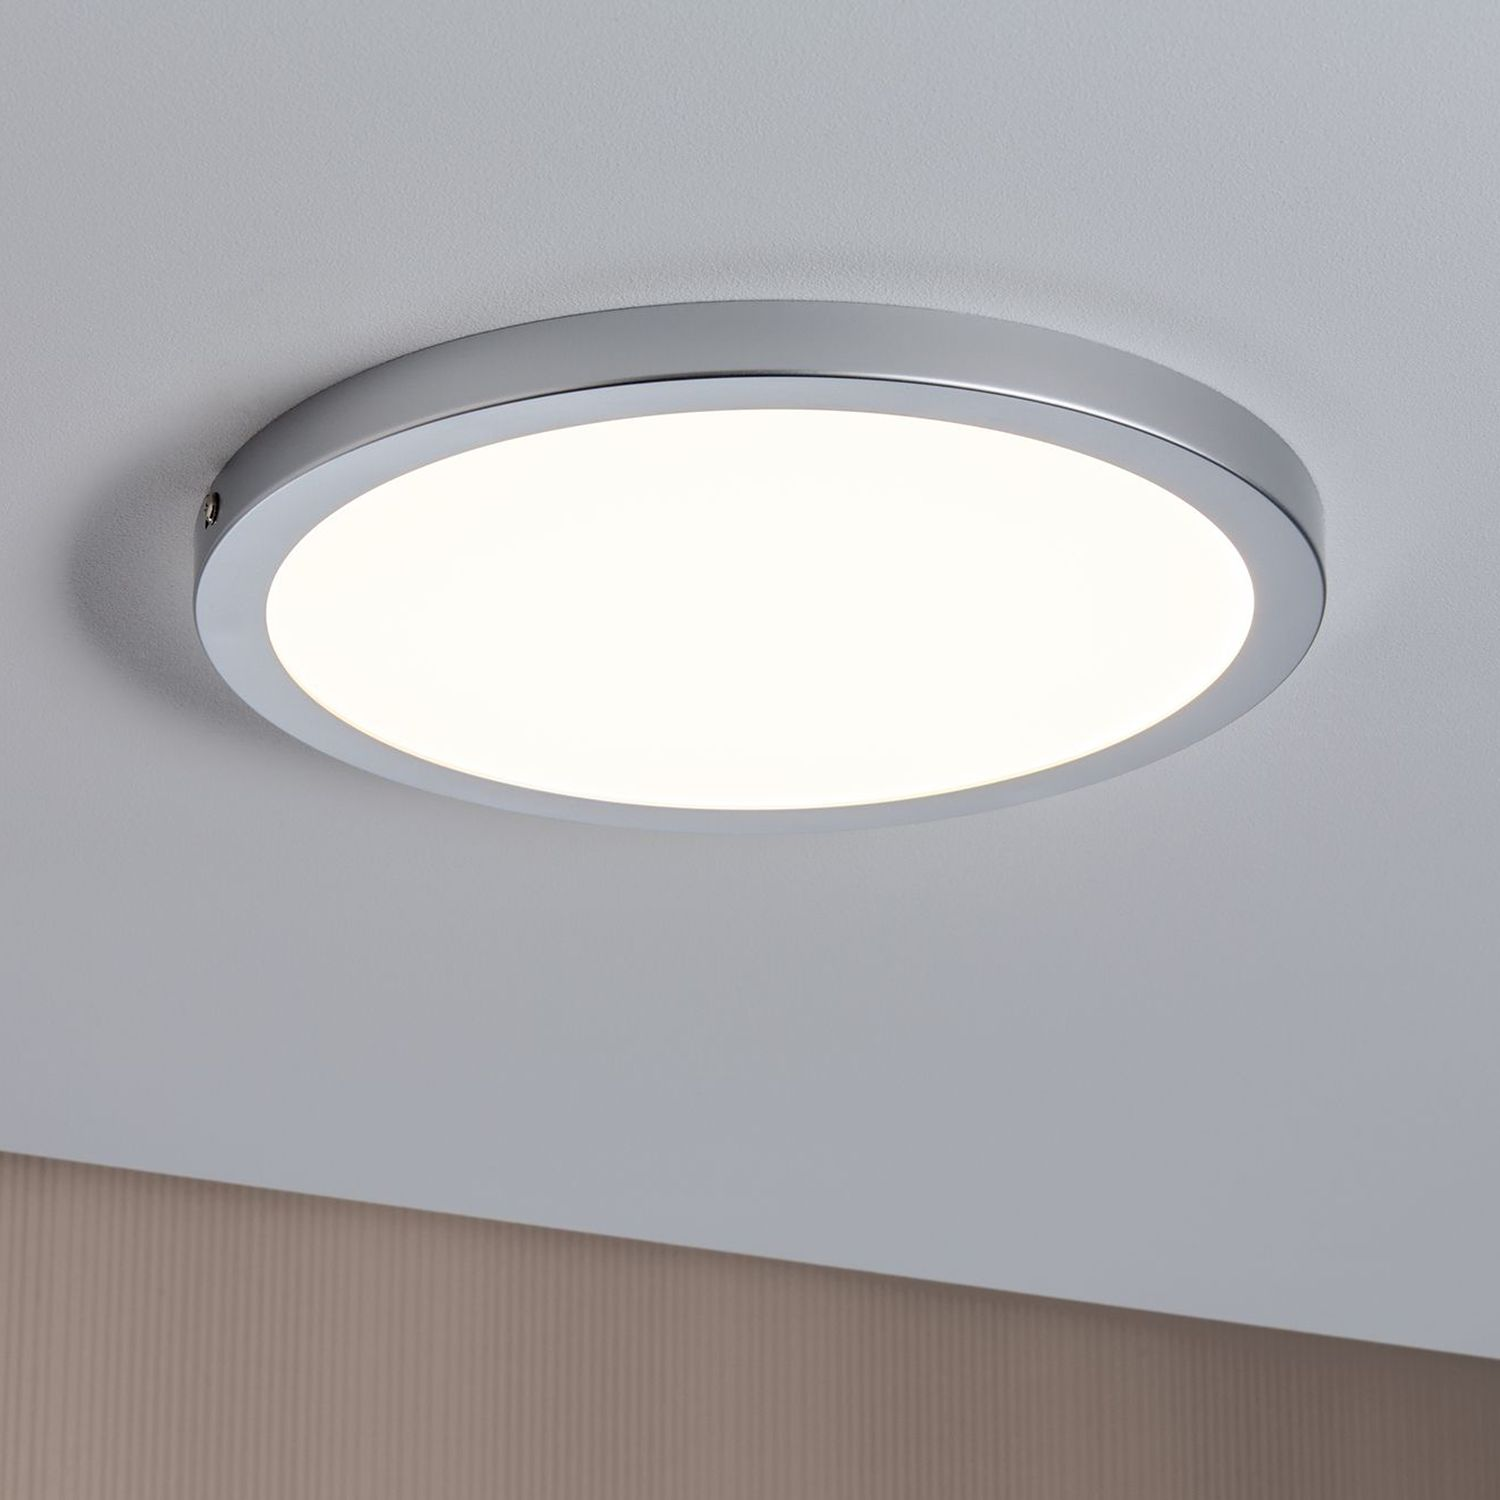 home24 LED-Deckenleuchte Panel II